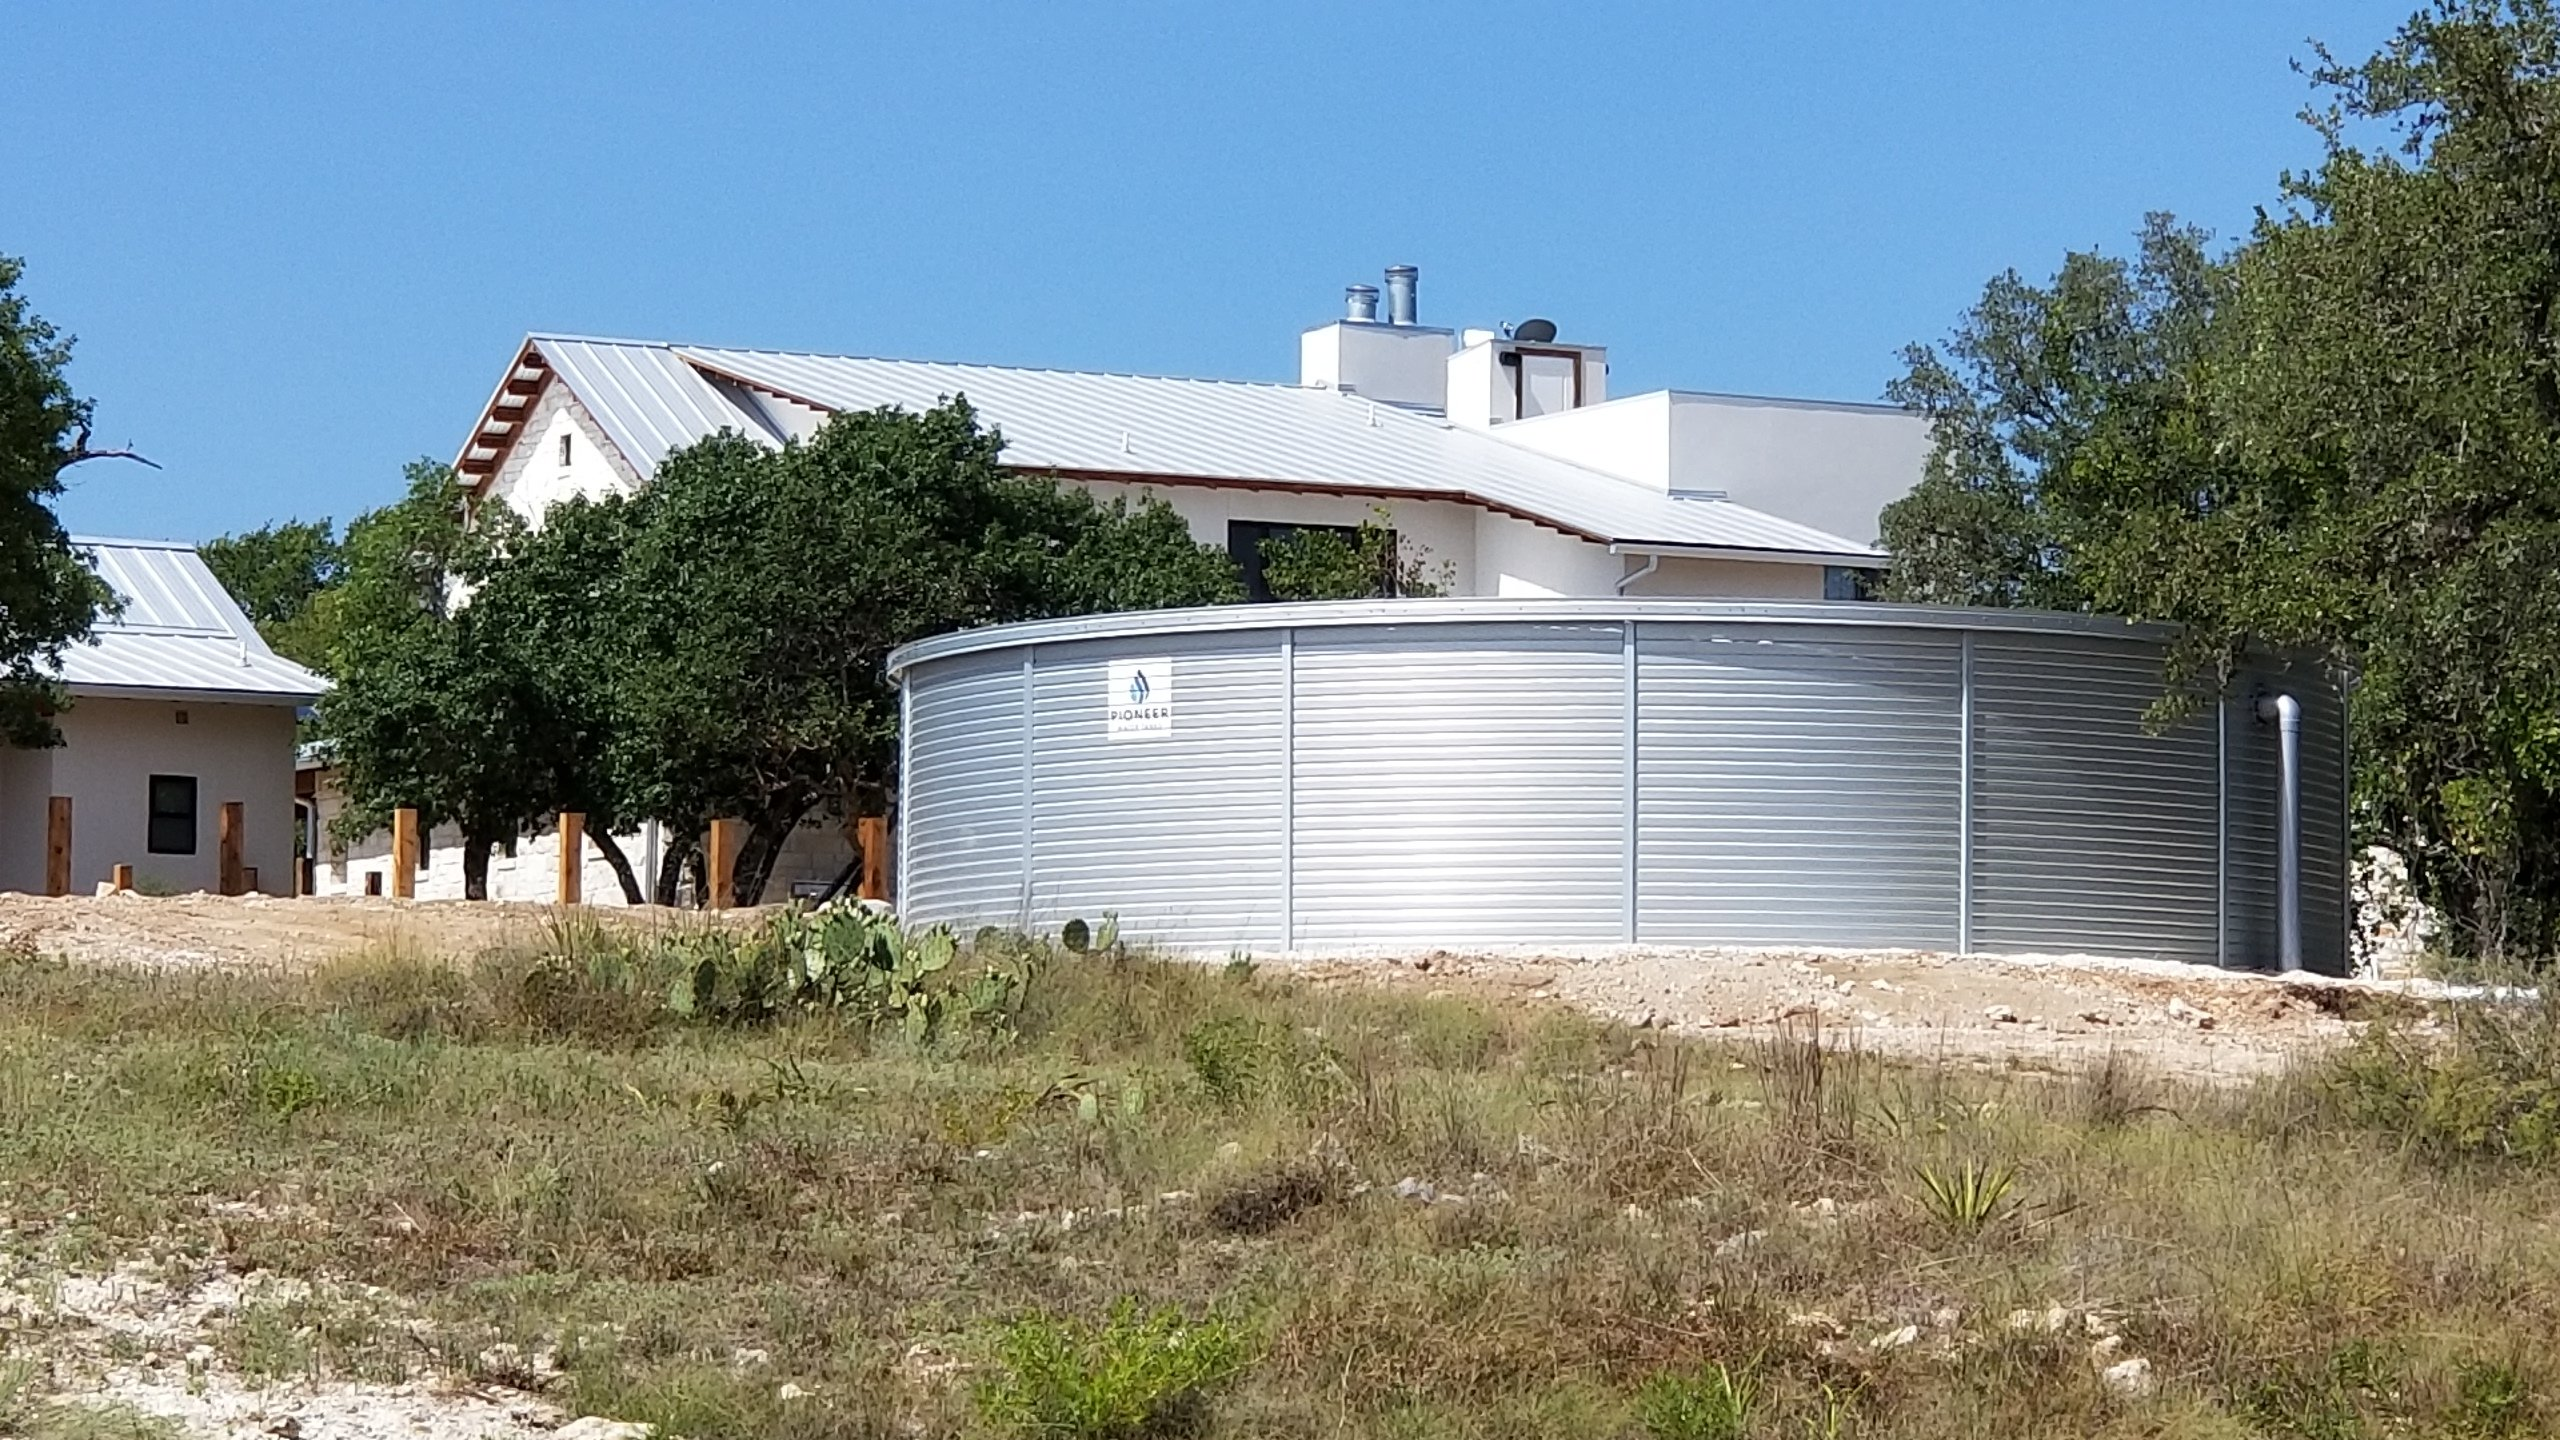 Harvested Rain Solutions provided a rainwater harvesting system from design, to installation. Rainwater is stored within the Pioneer Water Tank.